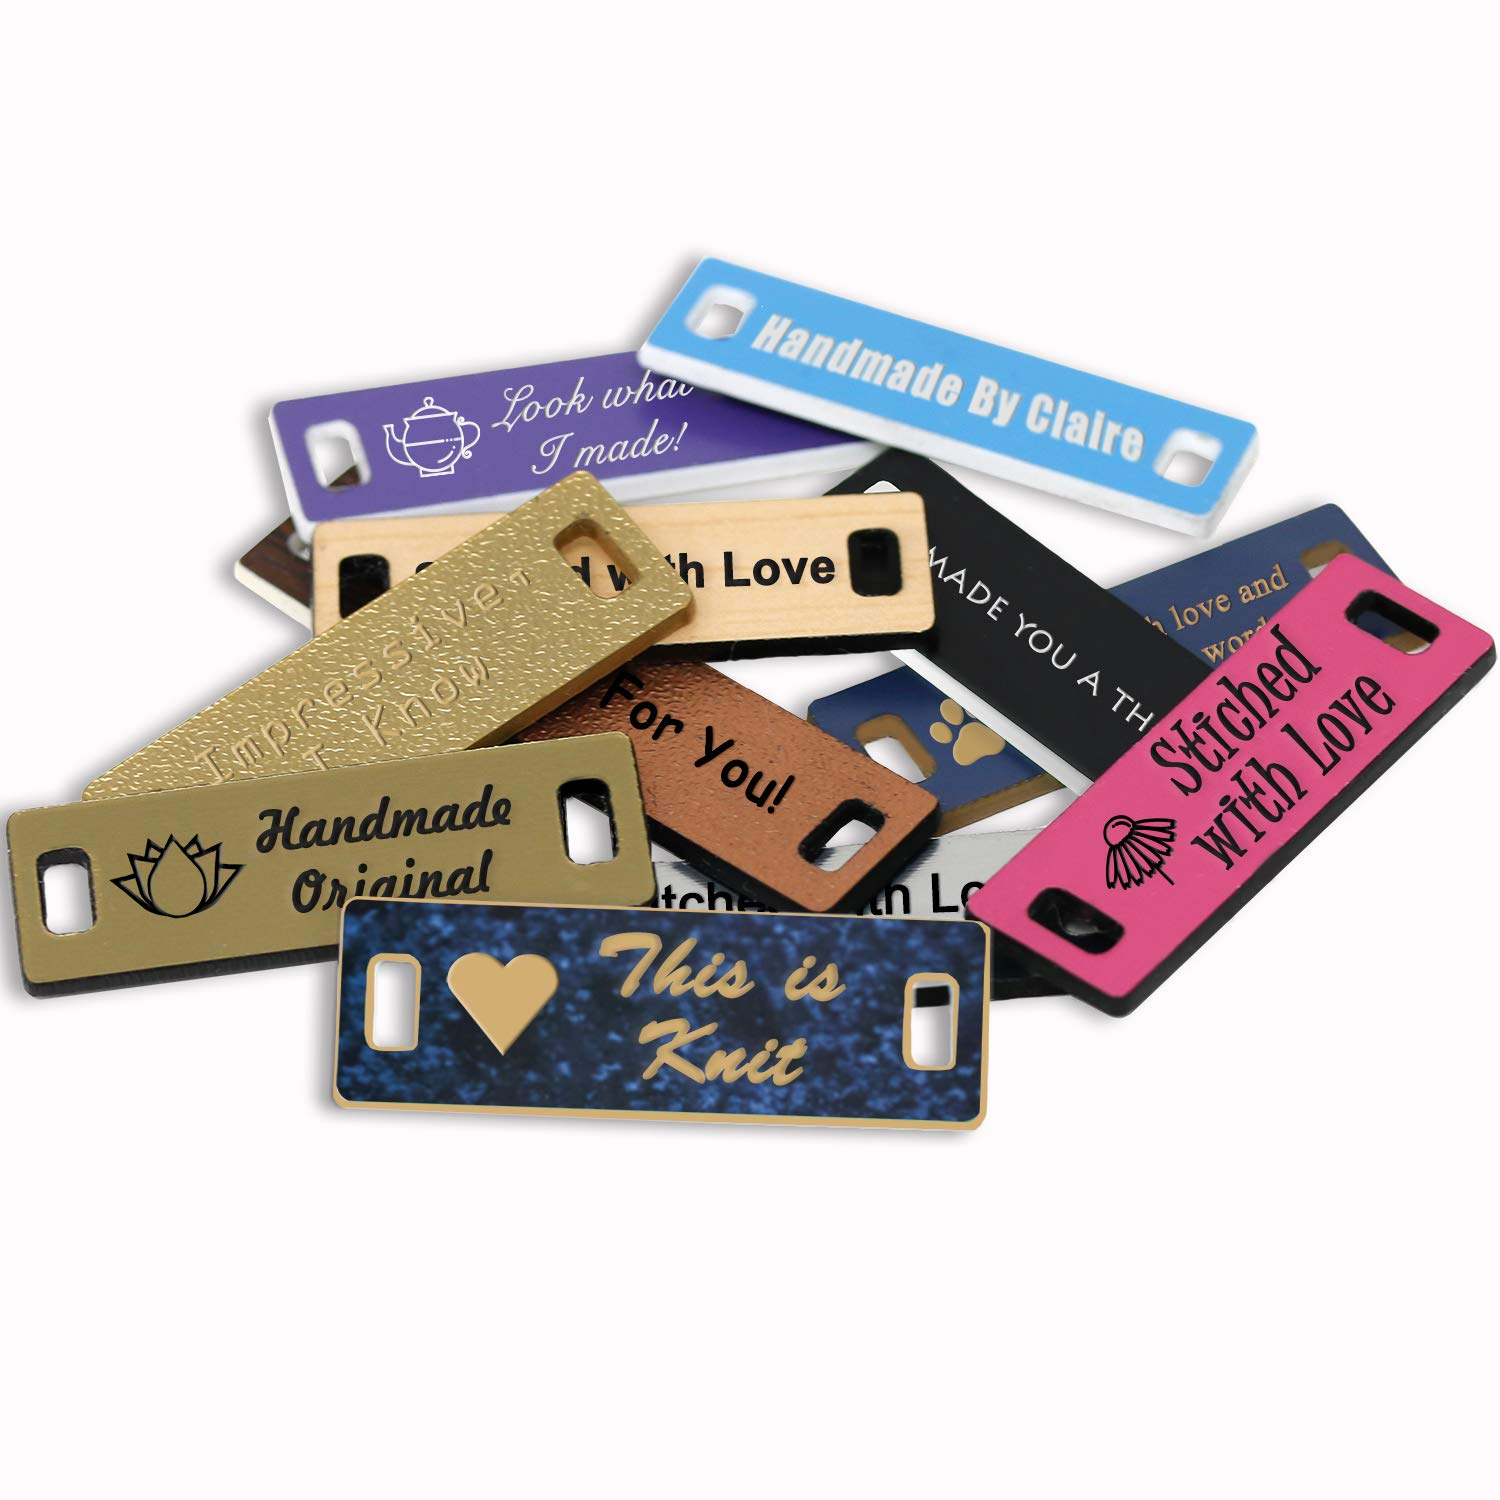 LHS Engraving | Personalized Hand Made Tags Custom Engraved Celestial Blue Plastic Sewing & Knitting Labels Gold Lettering USA - S1